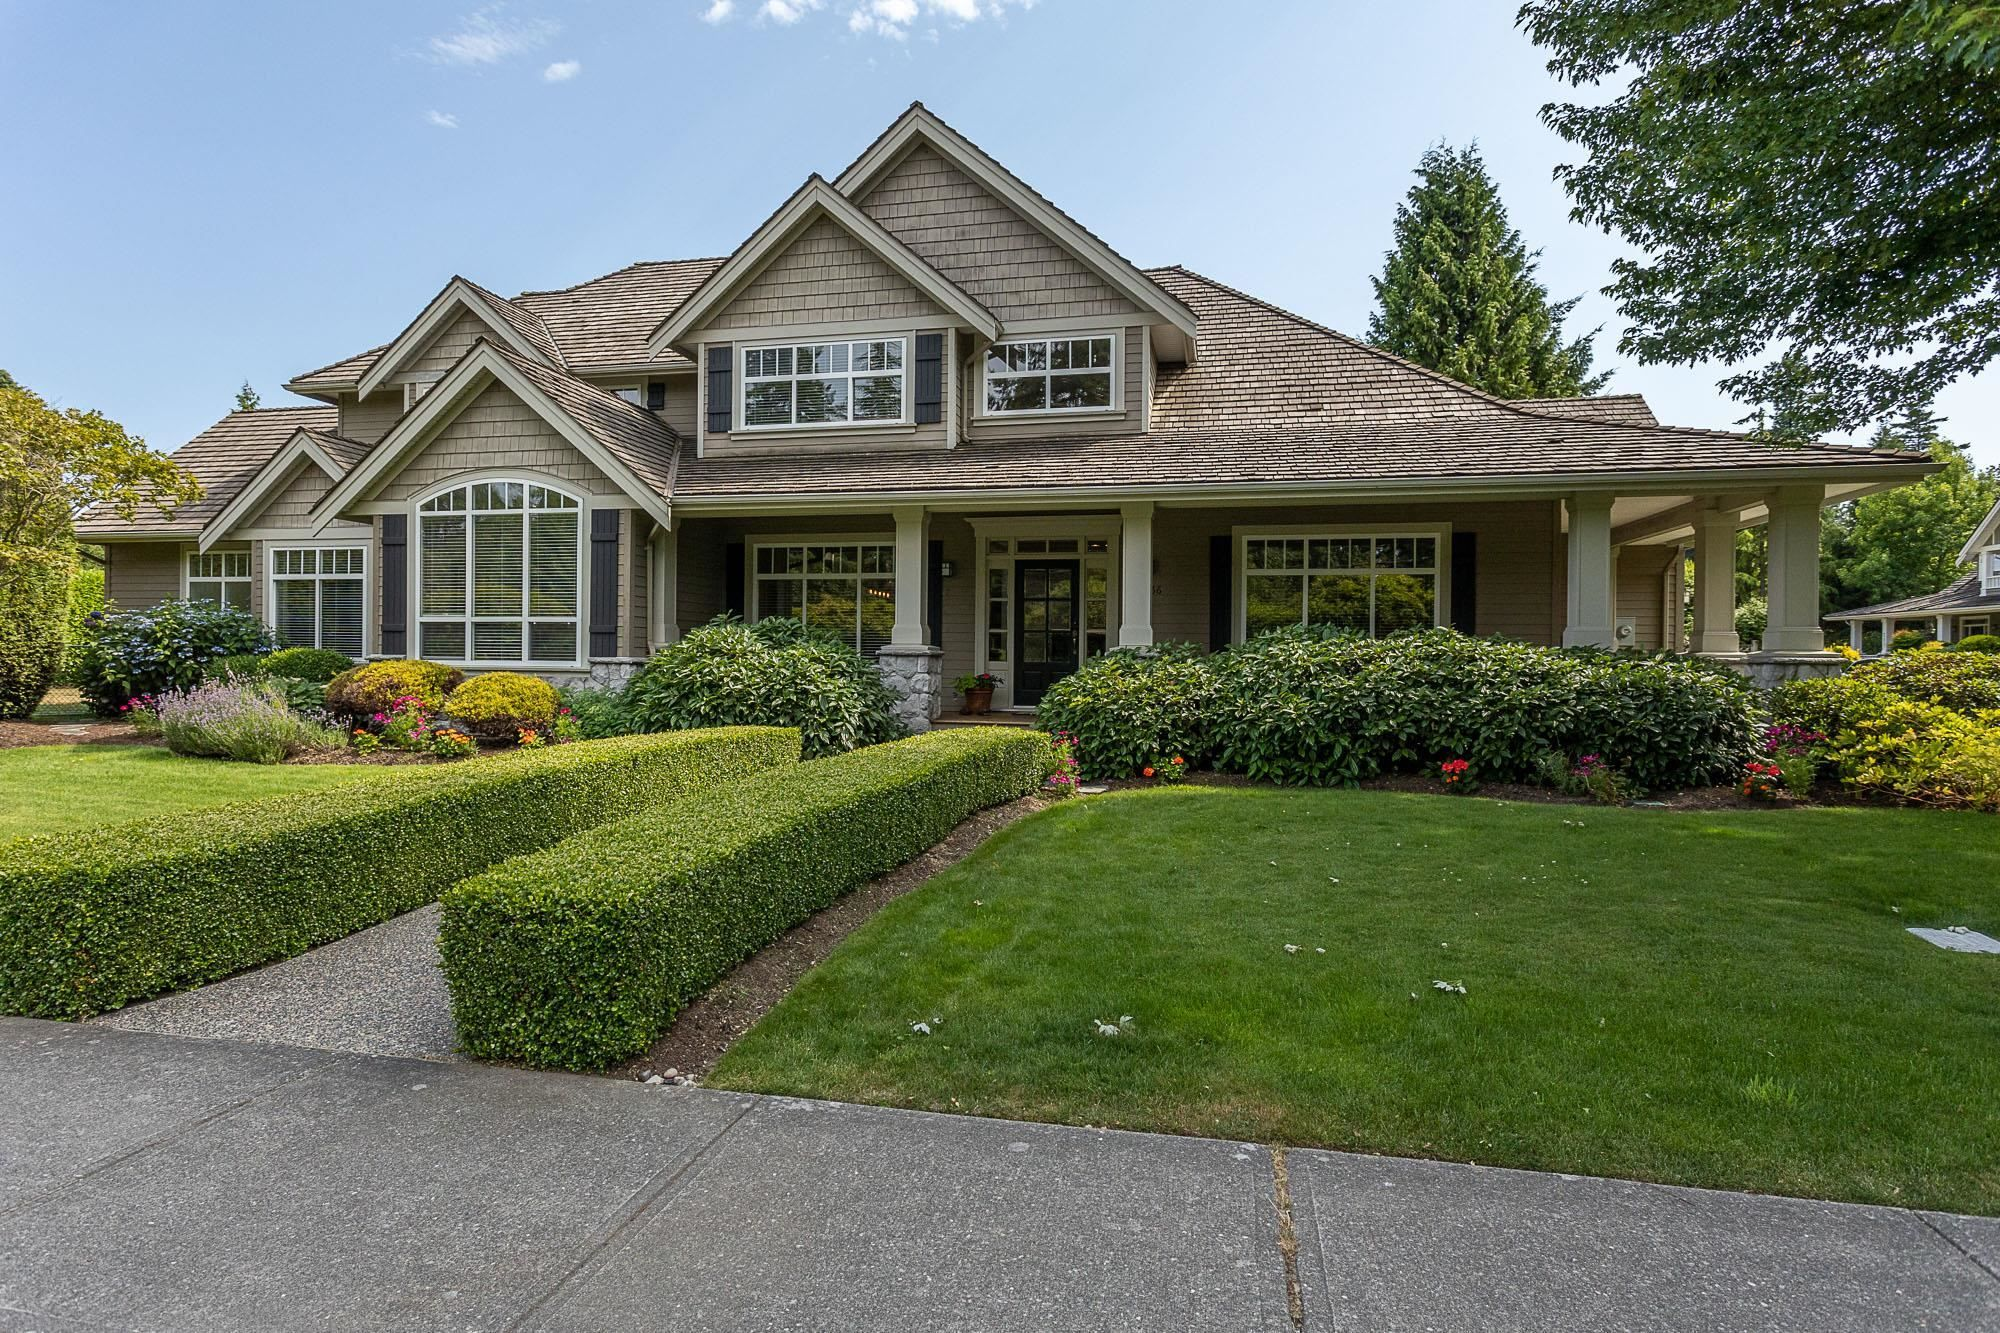 Main Photo: 13266 24 AVENUE in Surrey: Elgin Chantrell House for sale (South Surrey White Rock)  : MLS®# R2616958